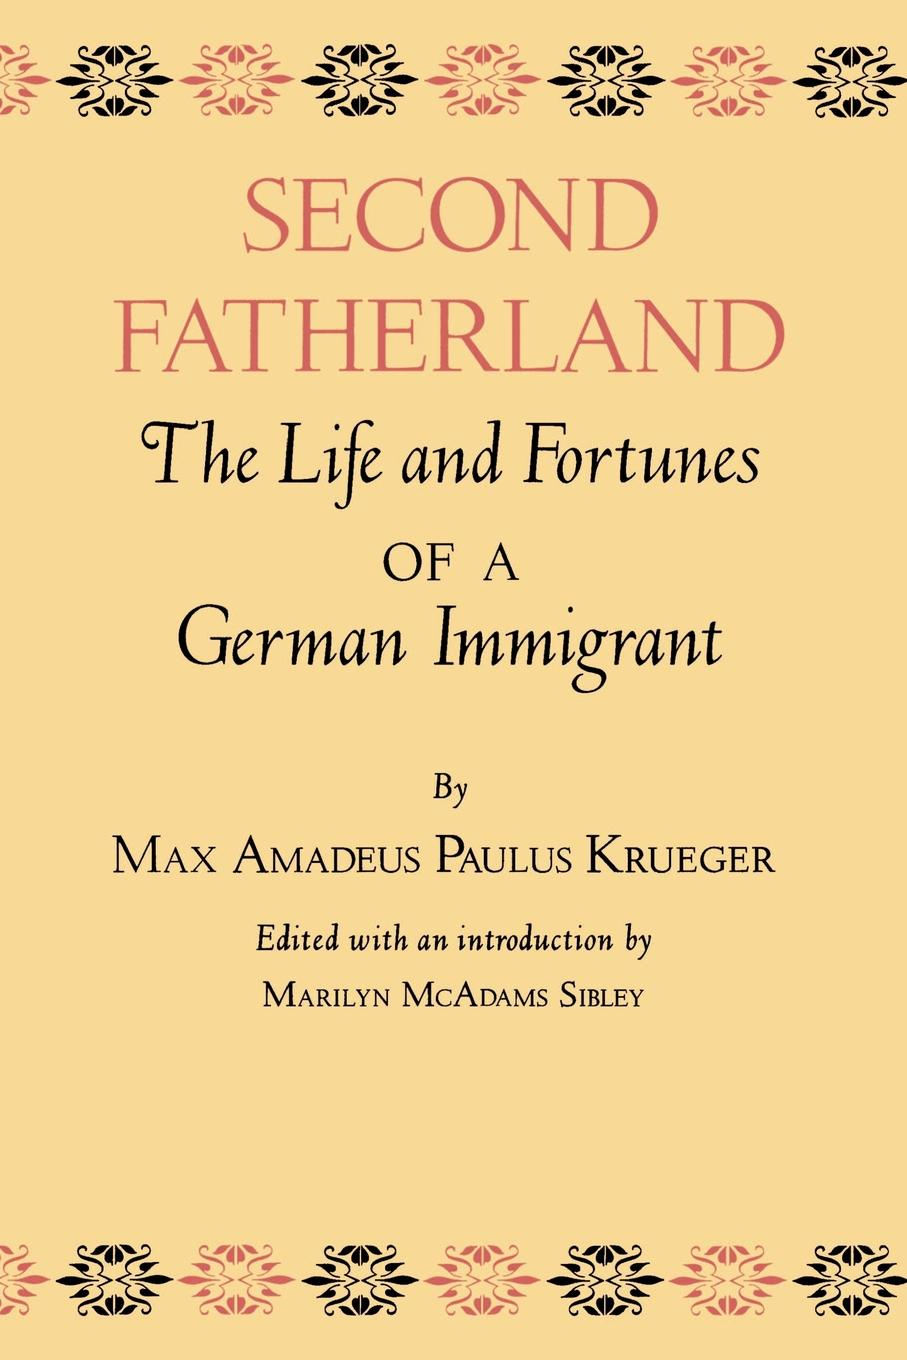 цена Max Amadeus Paulus Krueger Second Fatherland. The Life and Fortunes of a German Immigrant онлайн в 2017 году